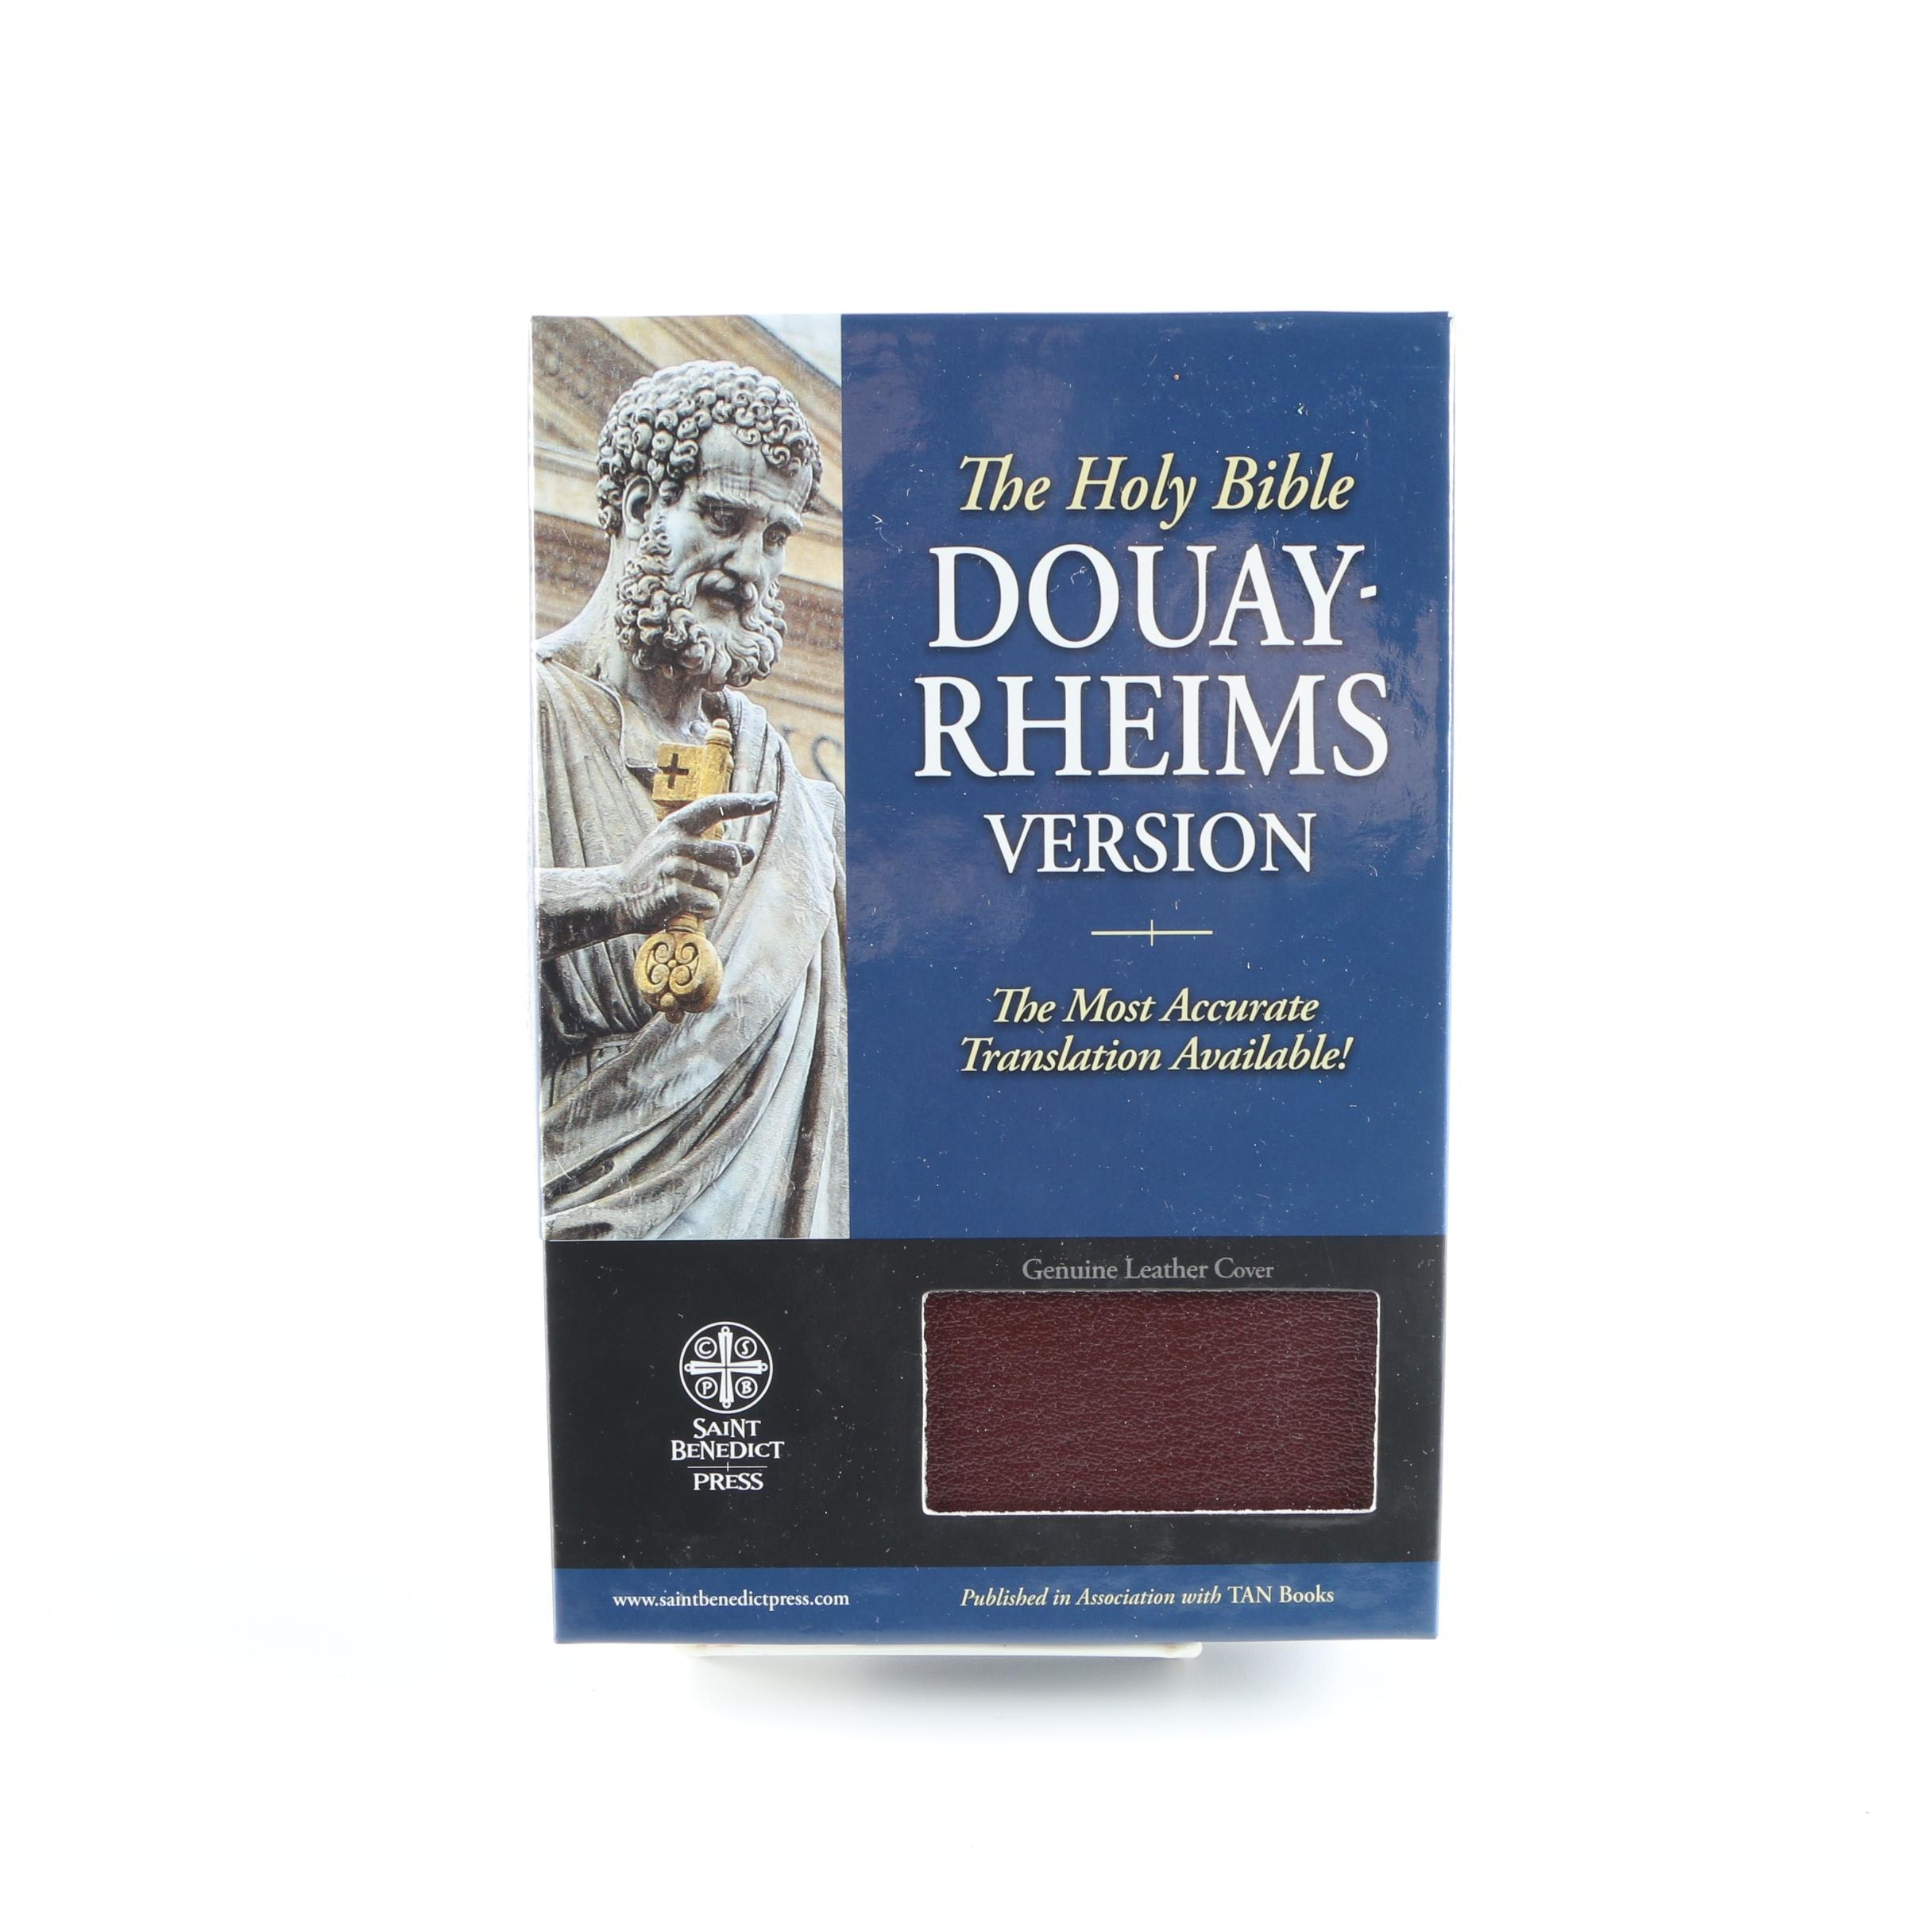 Douay-Rheims Version of The Holy Bible